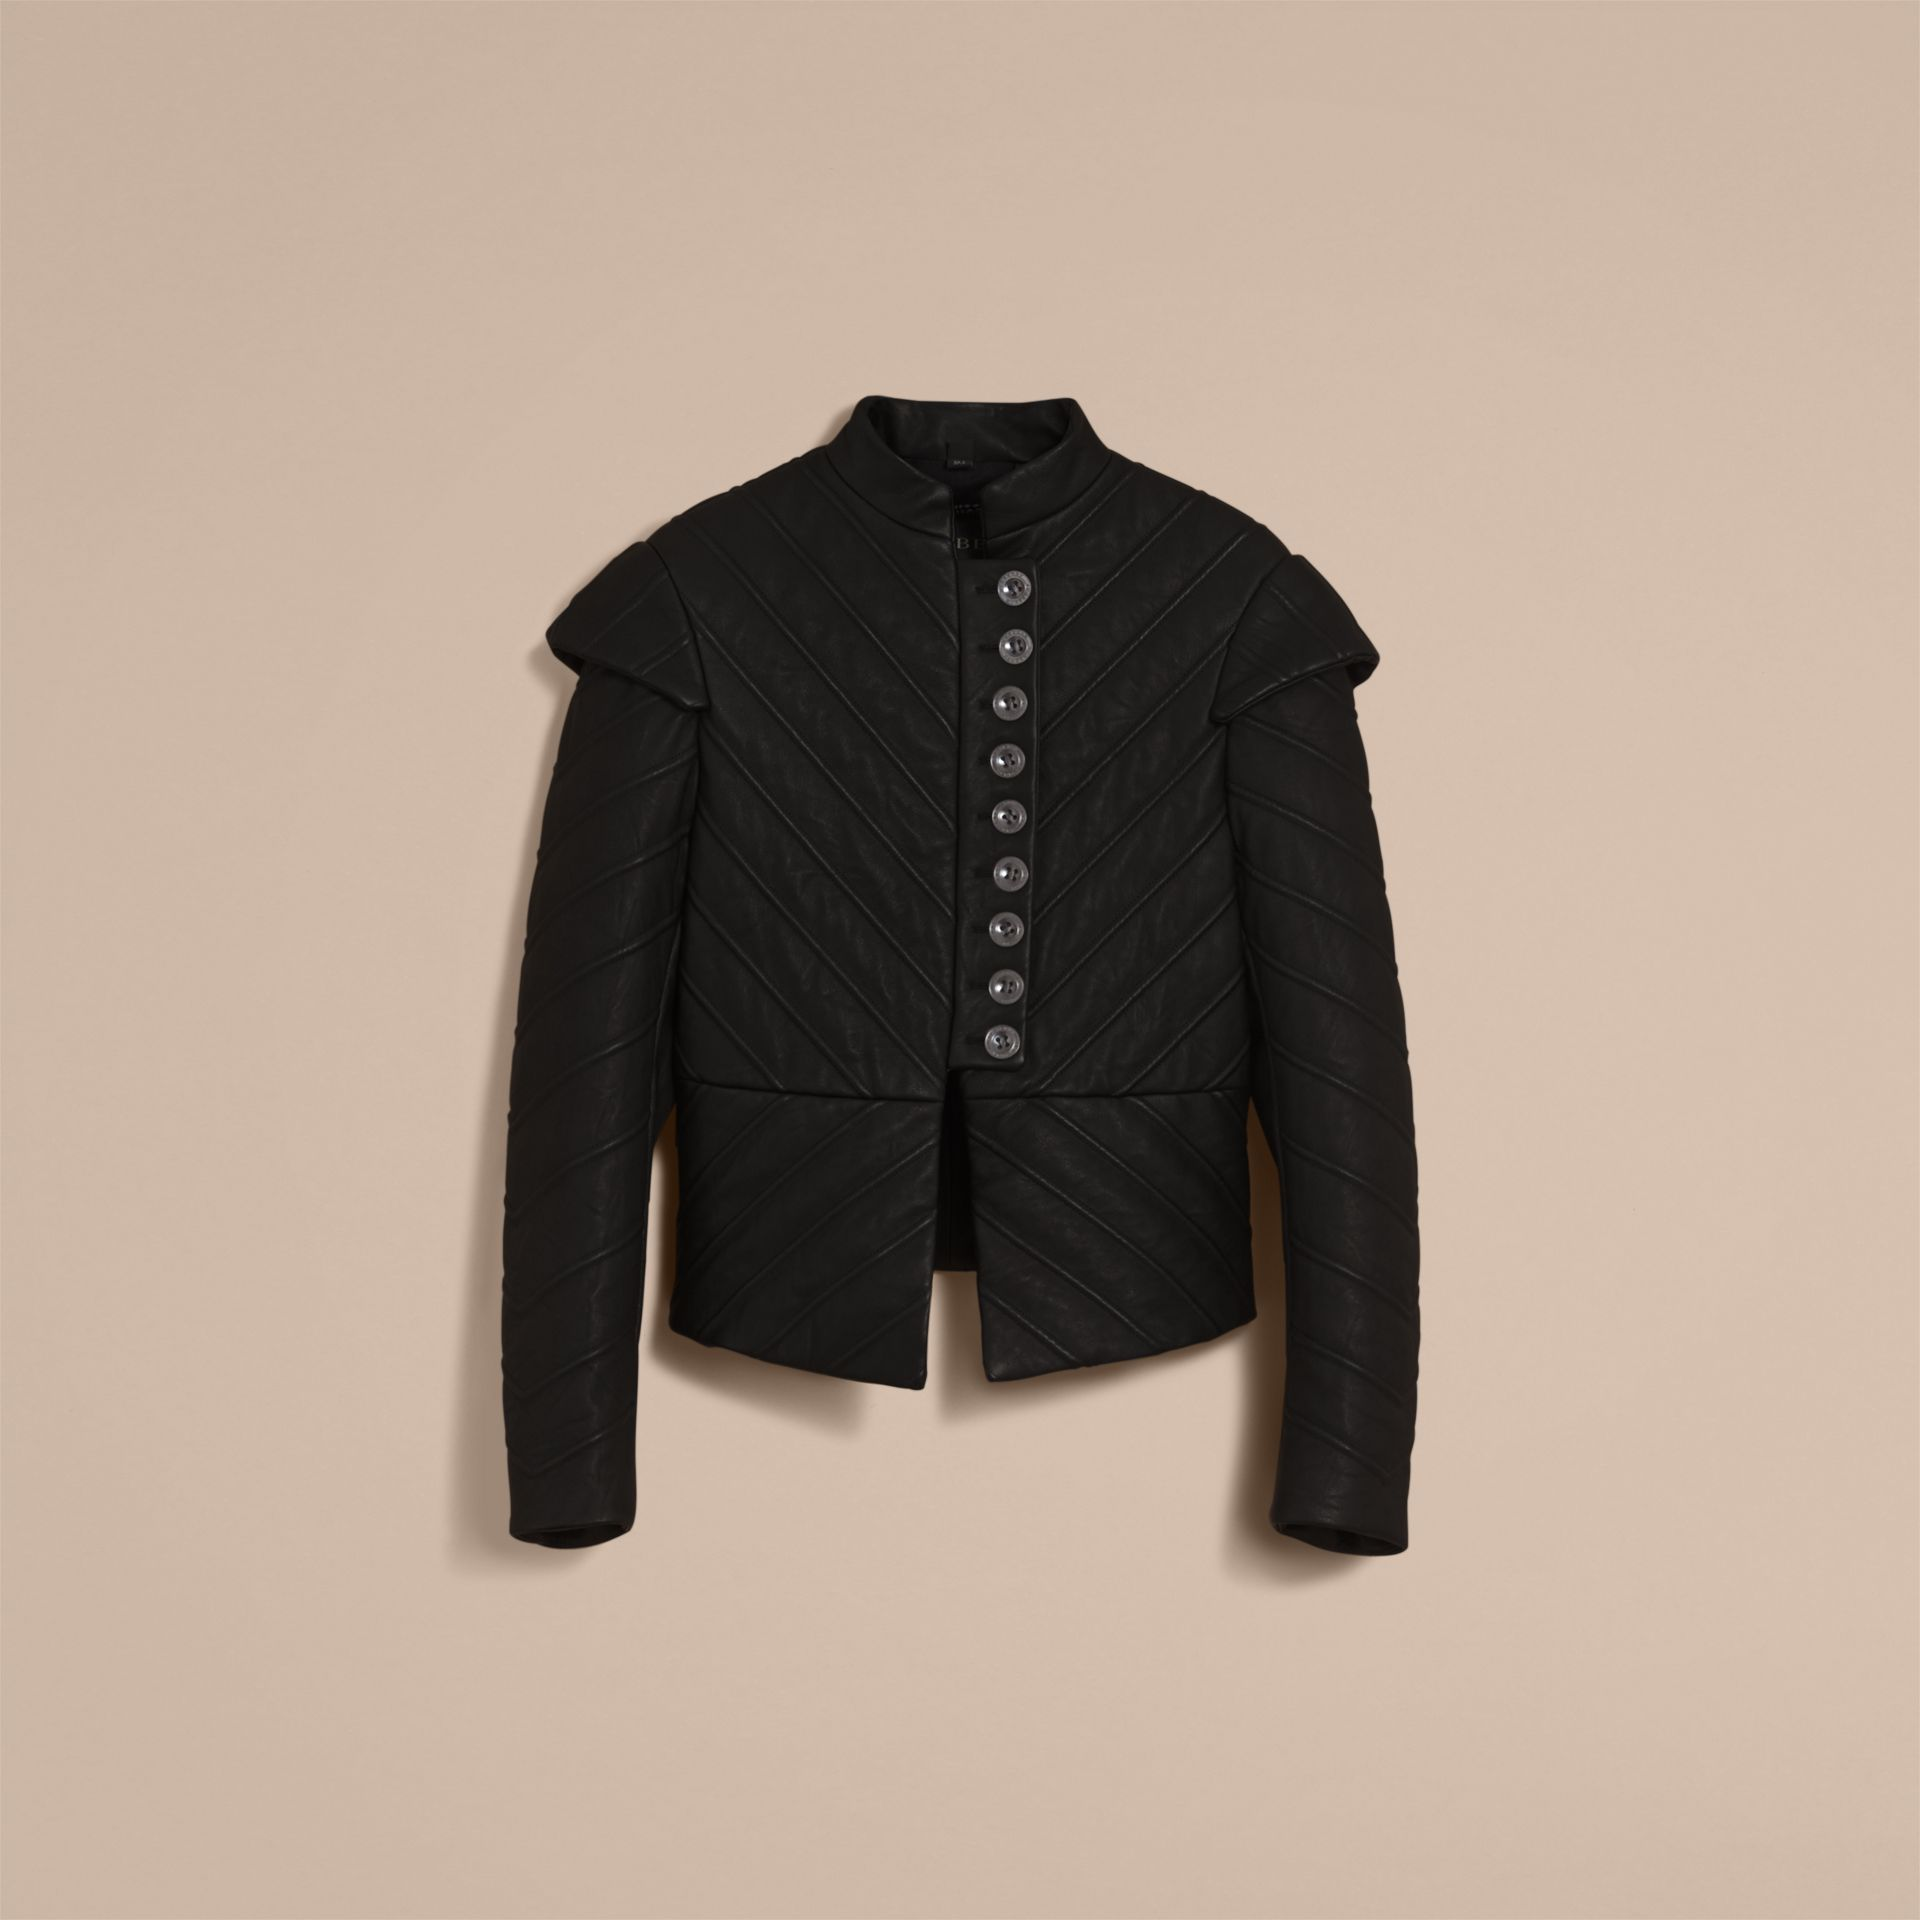 Quilted Lambskin Military-inspired Jacket in Black - Women | Burberry - gallery image 4